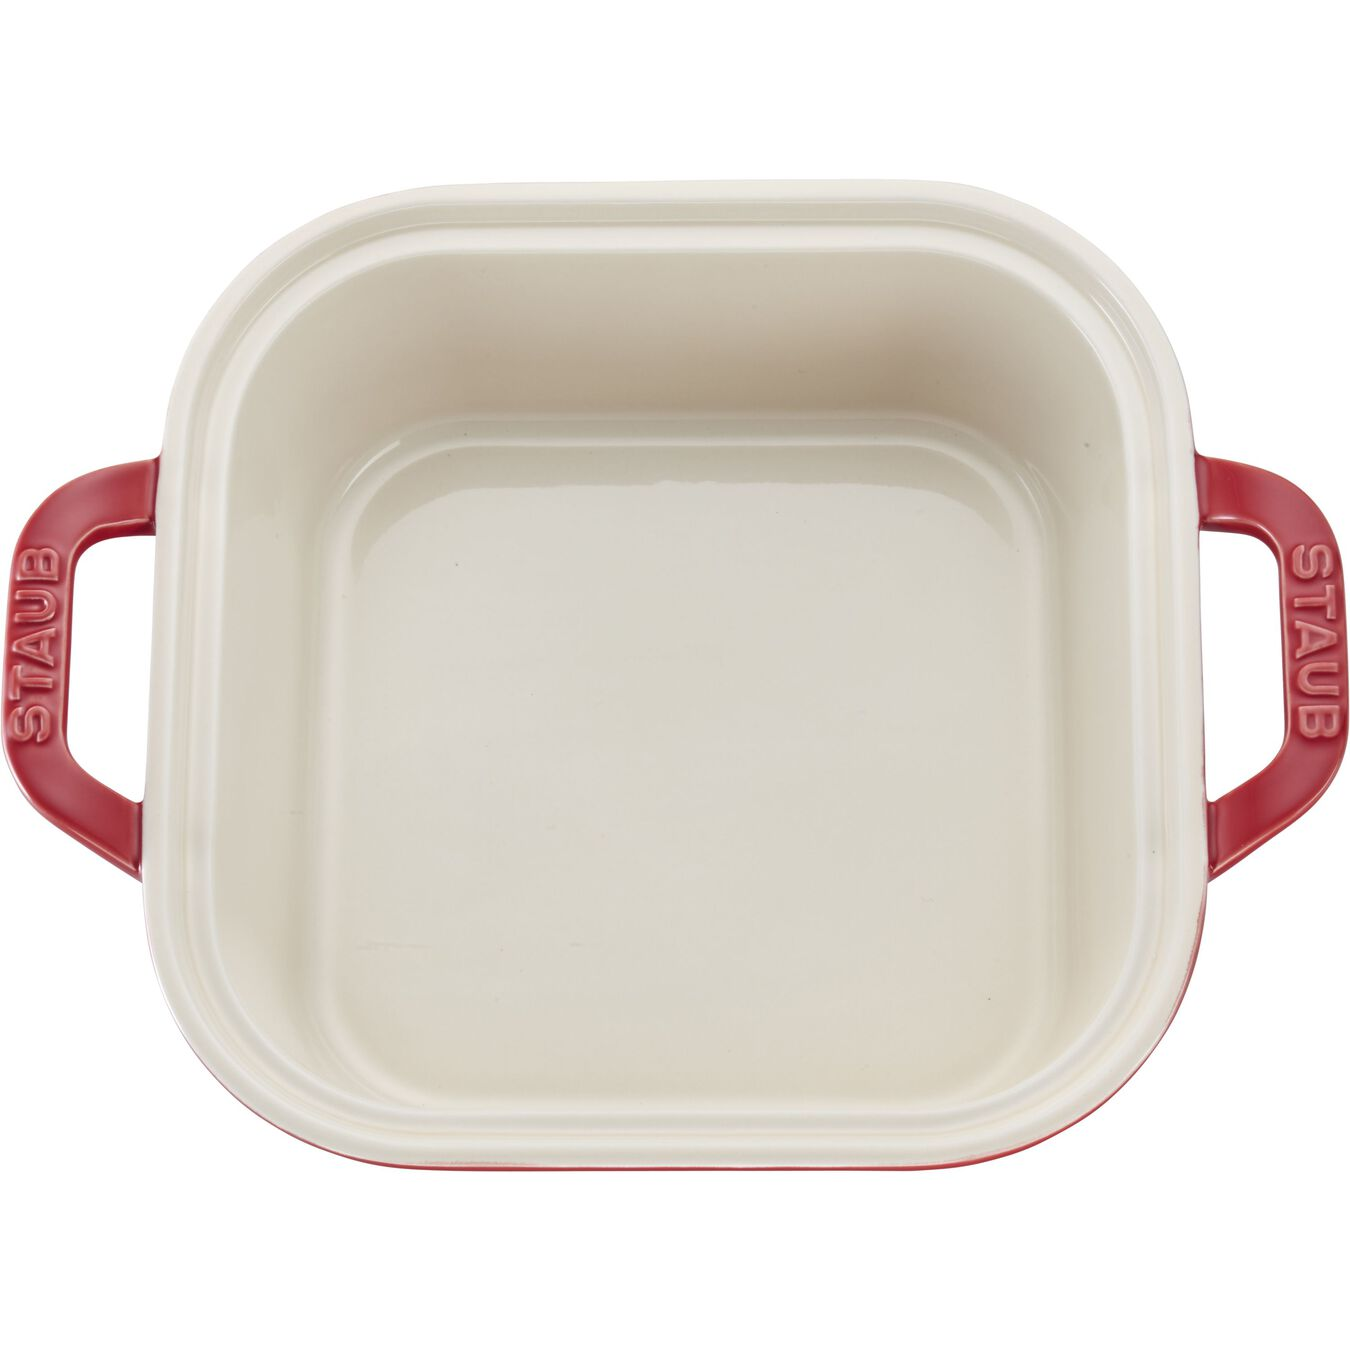 4-pc Baking Dish Set - Cherry,,large 6